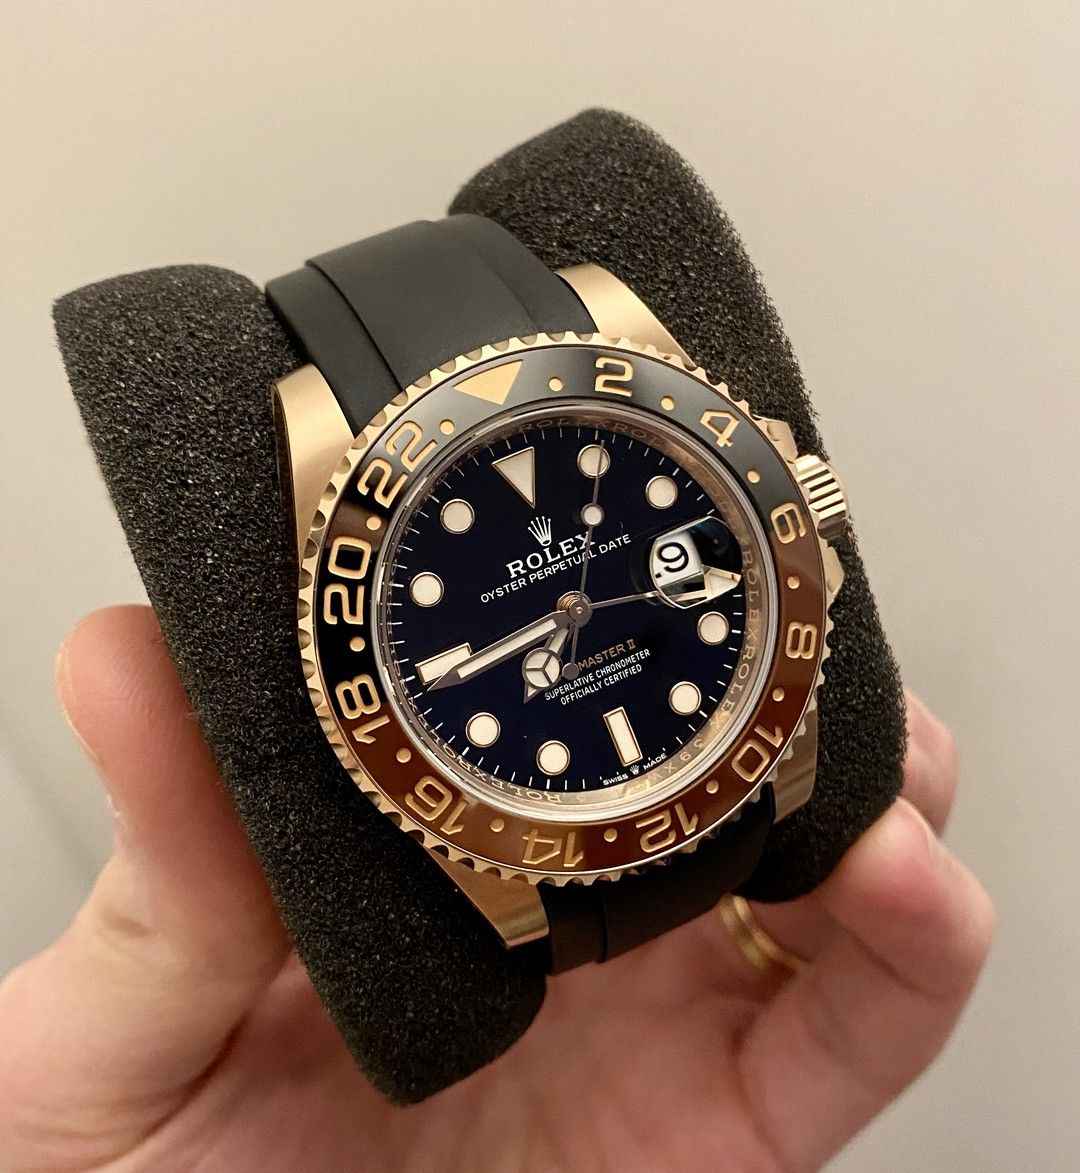 Rolex Rootbeer In 2020 Horology Rolex Rolex Gmt